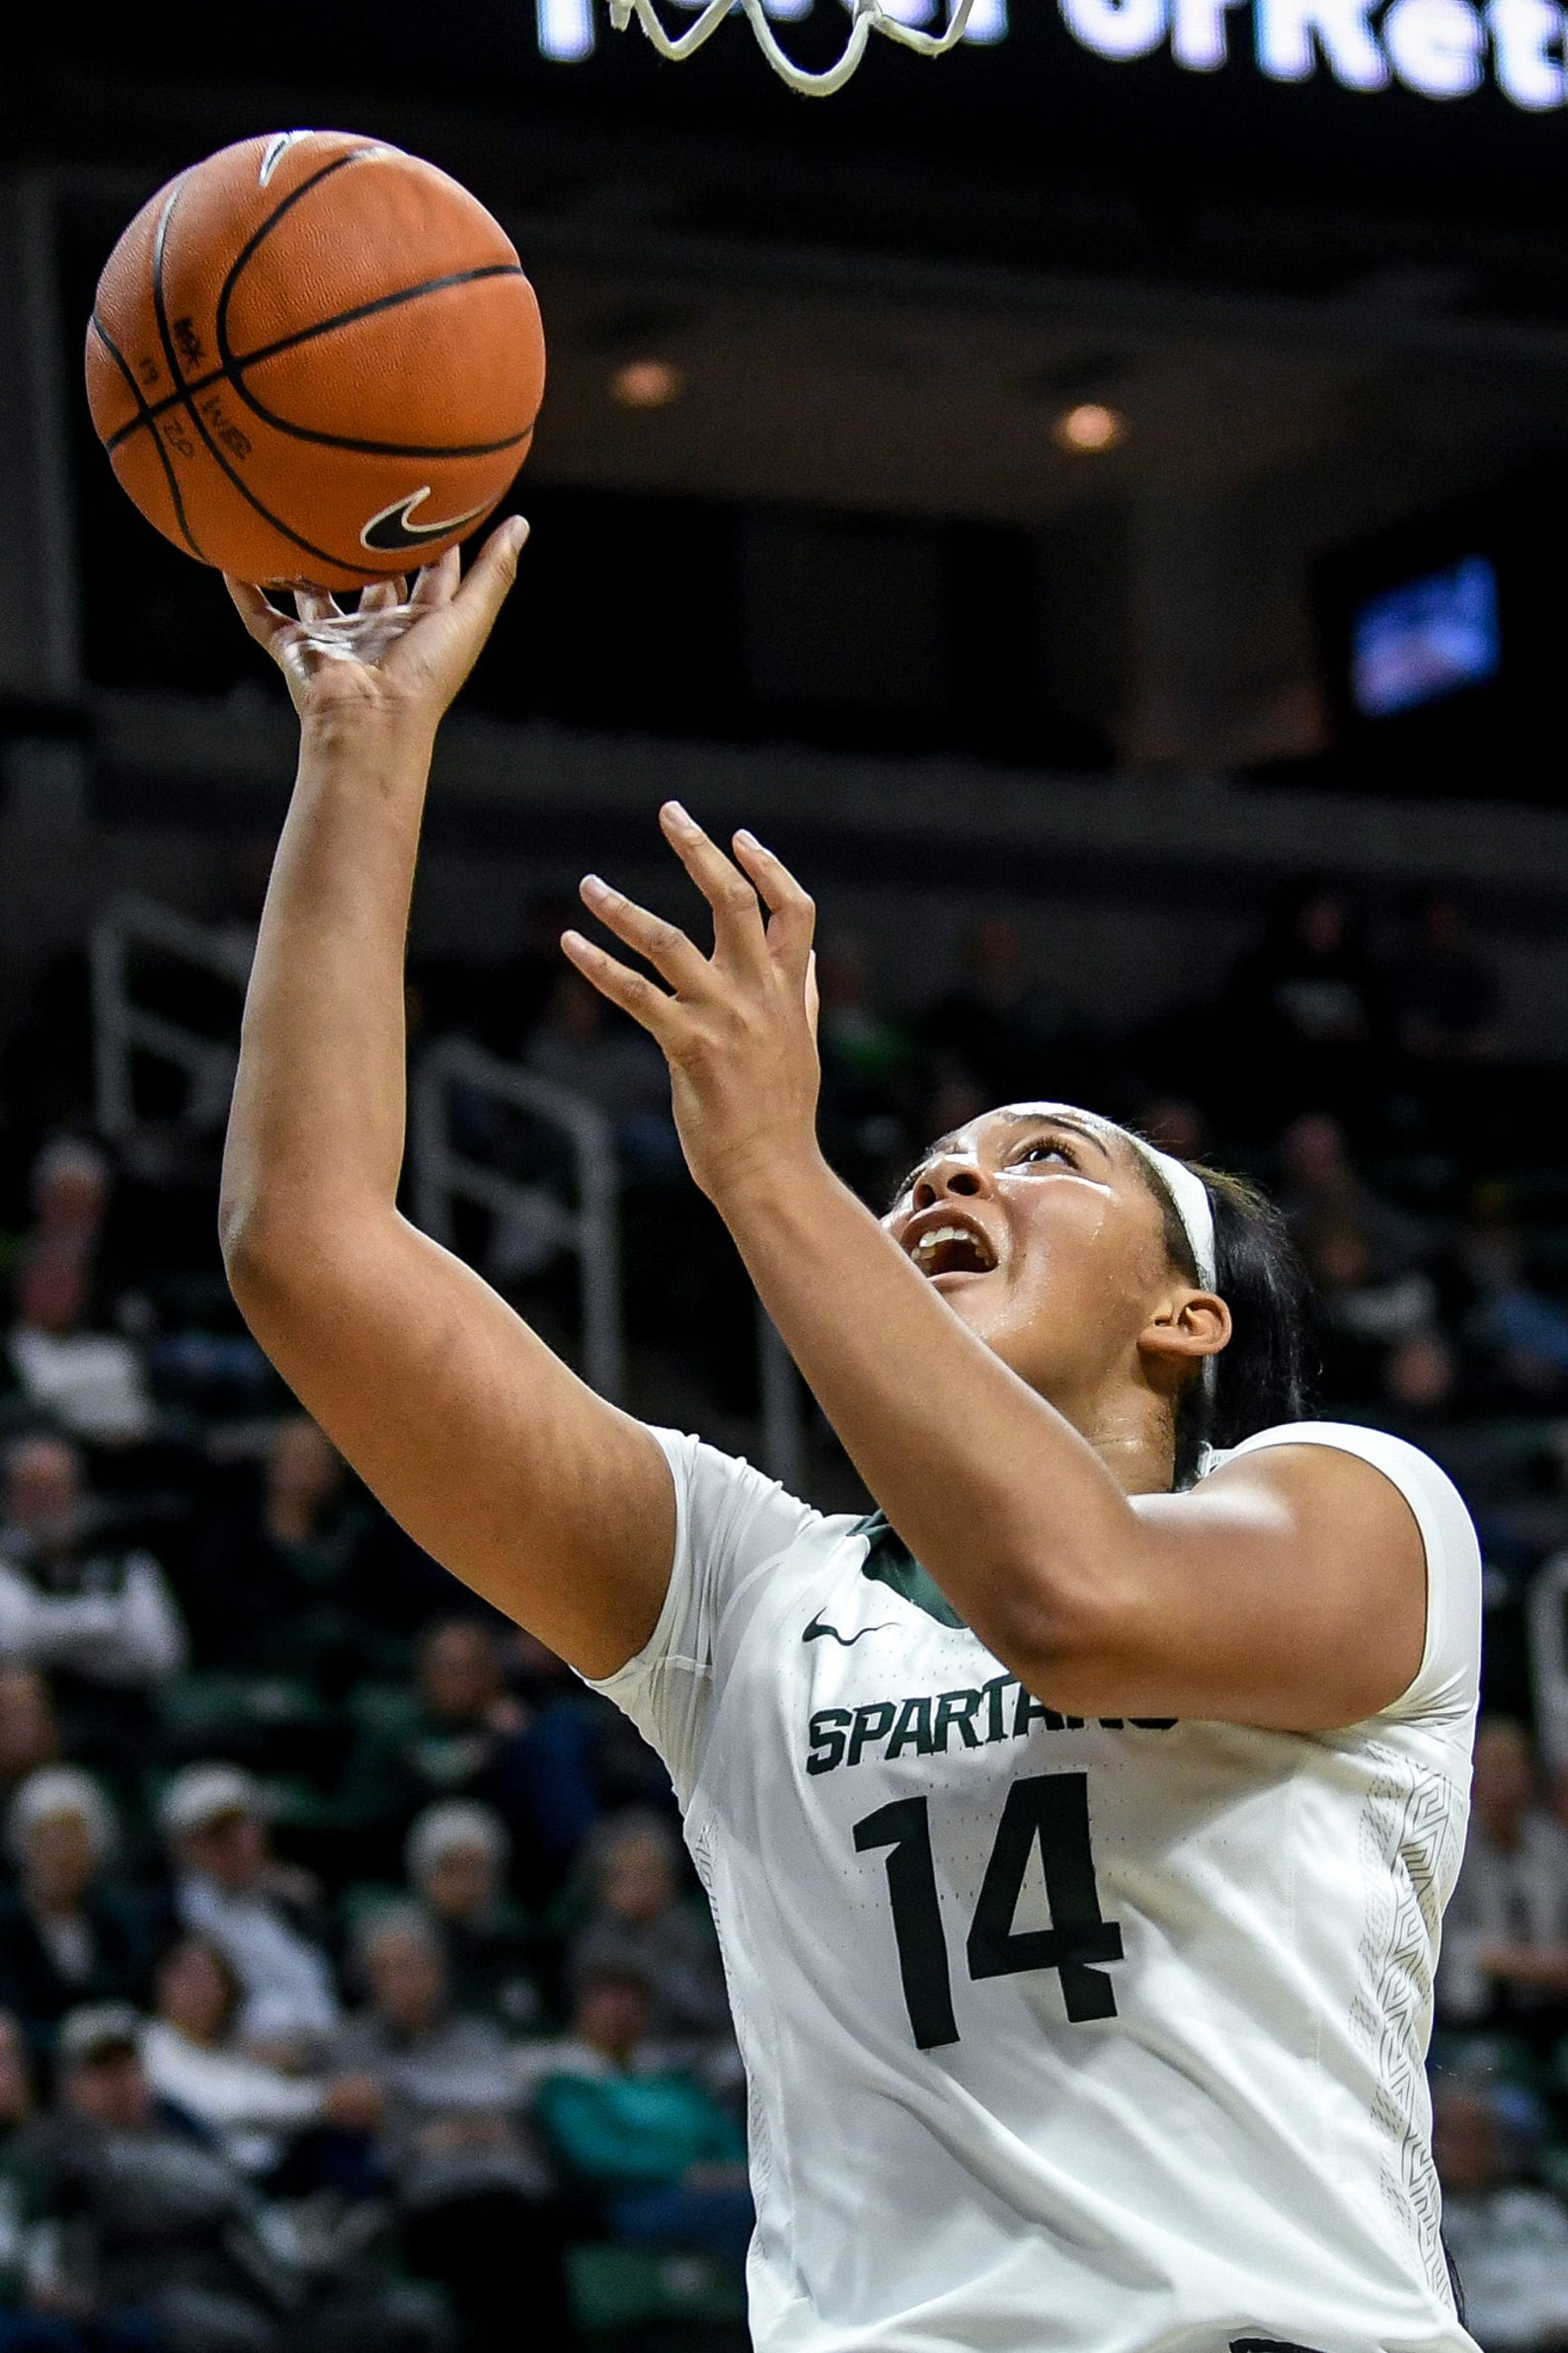 Michigan State's Taiyier Parks scores during the third quarter on Tuesday, Nov. 5, 2019, at the Breslin Center in East Lansing.